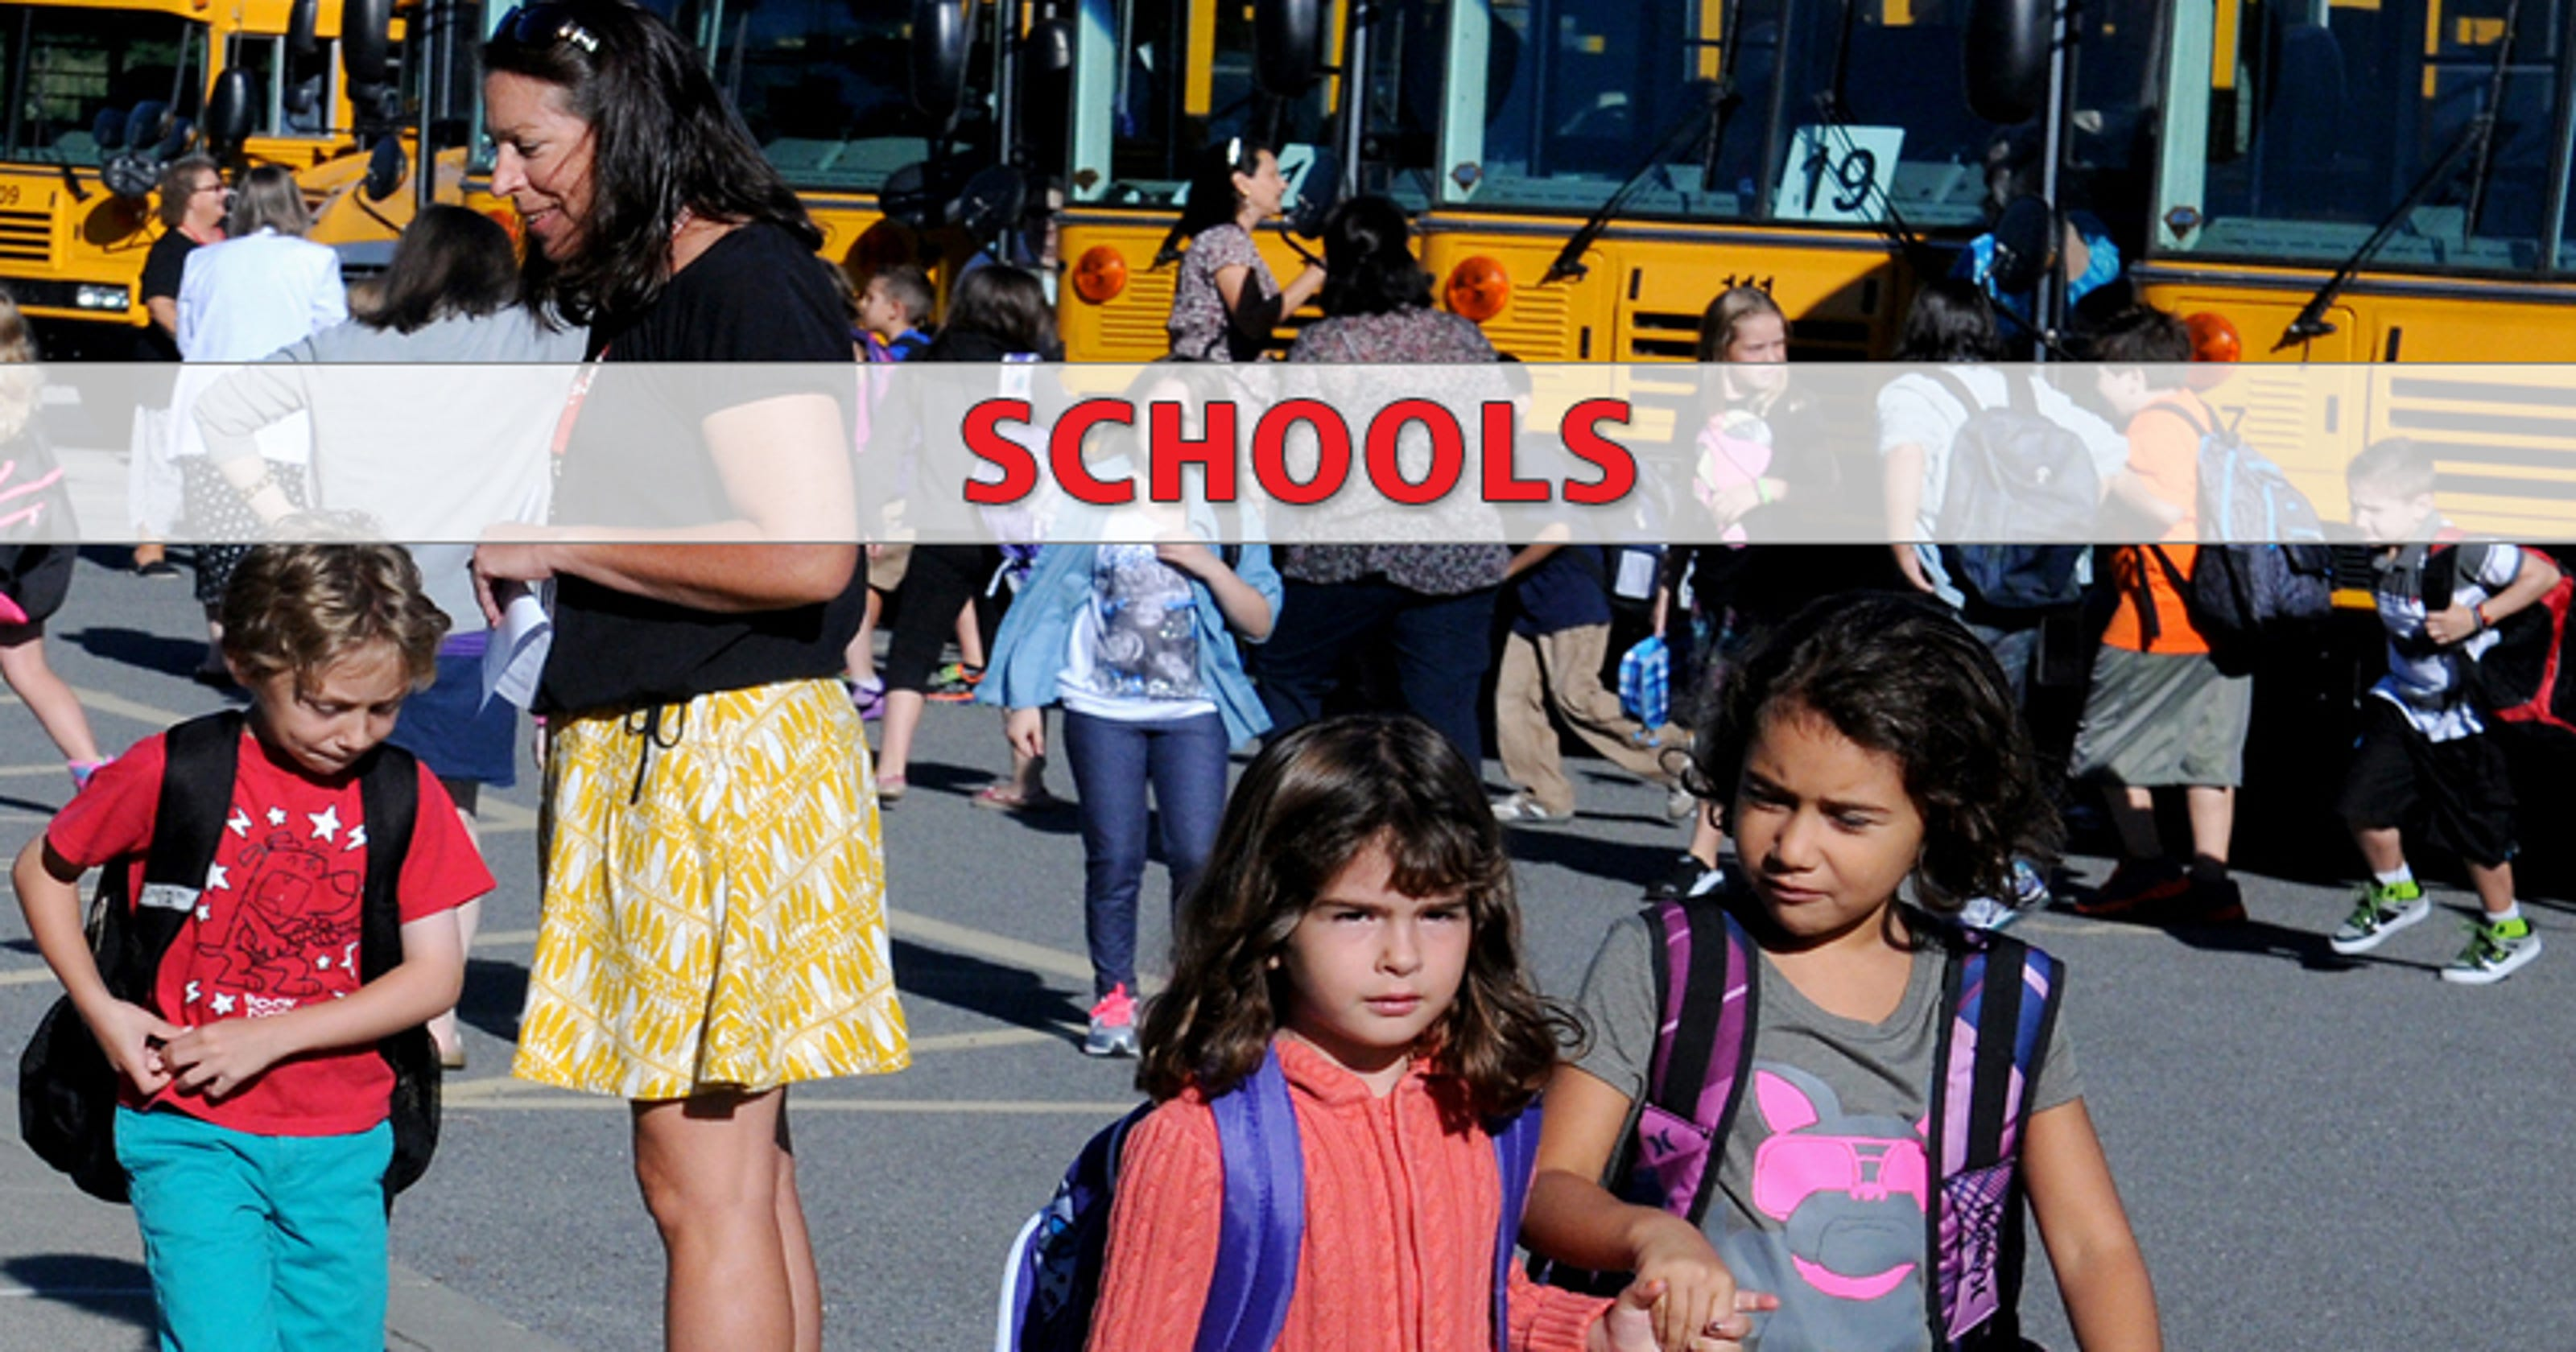 Thousands of local students heading back to school